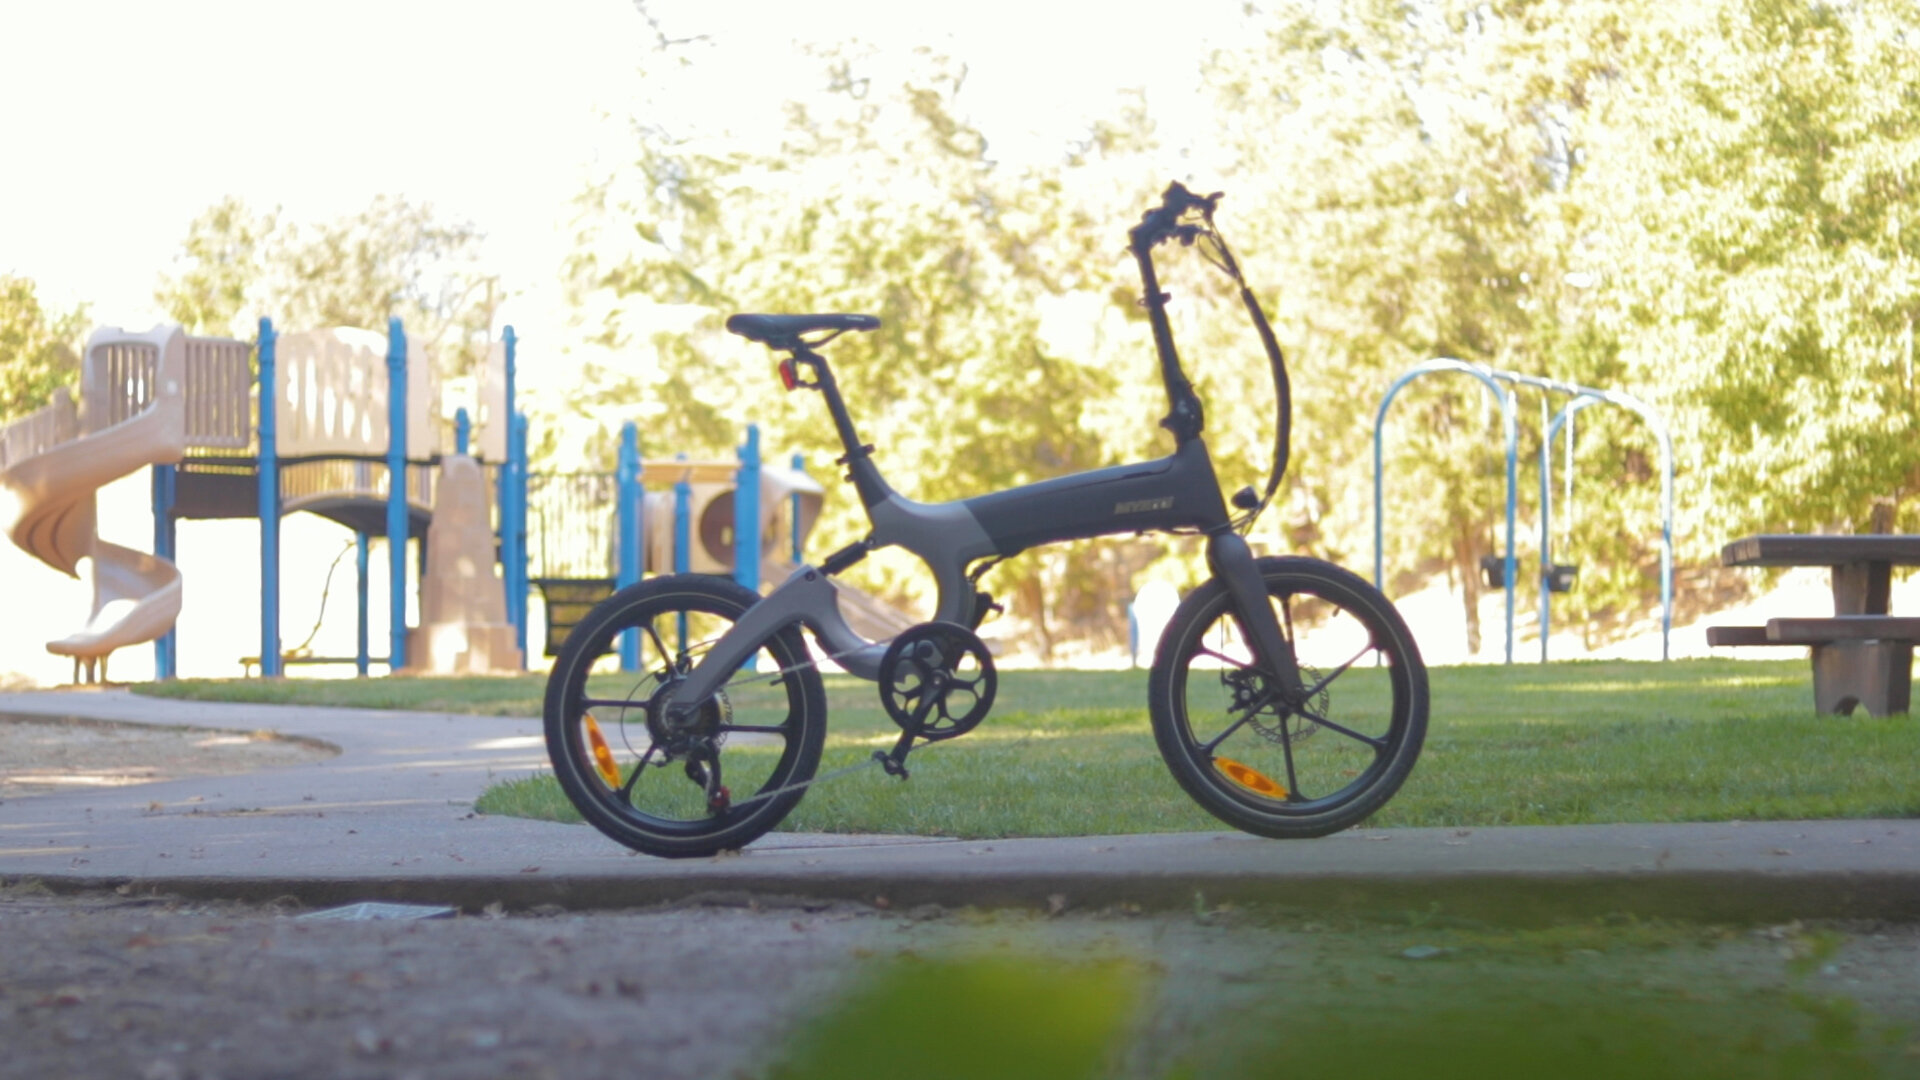 flowdot-electric-bike-review-2019-profile.jpg